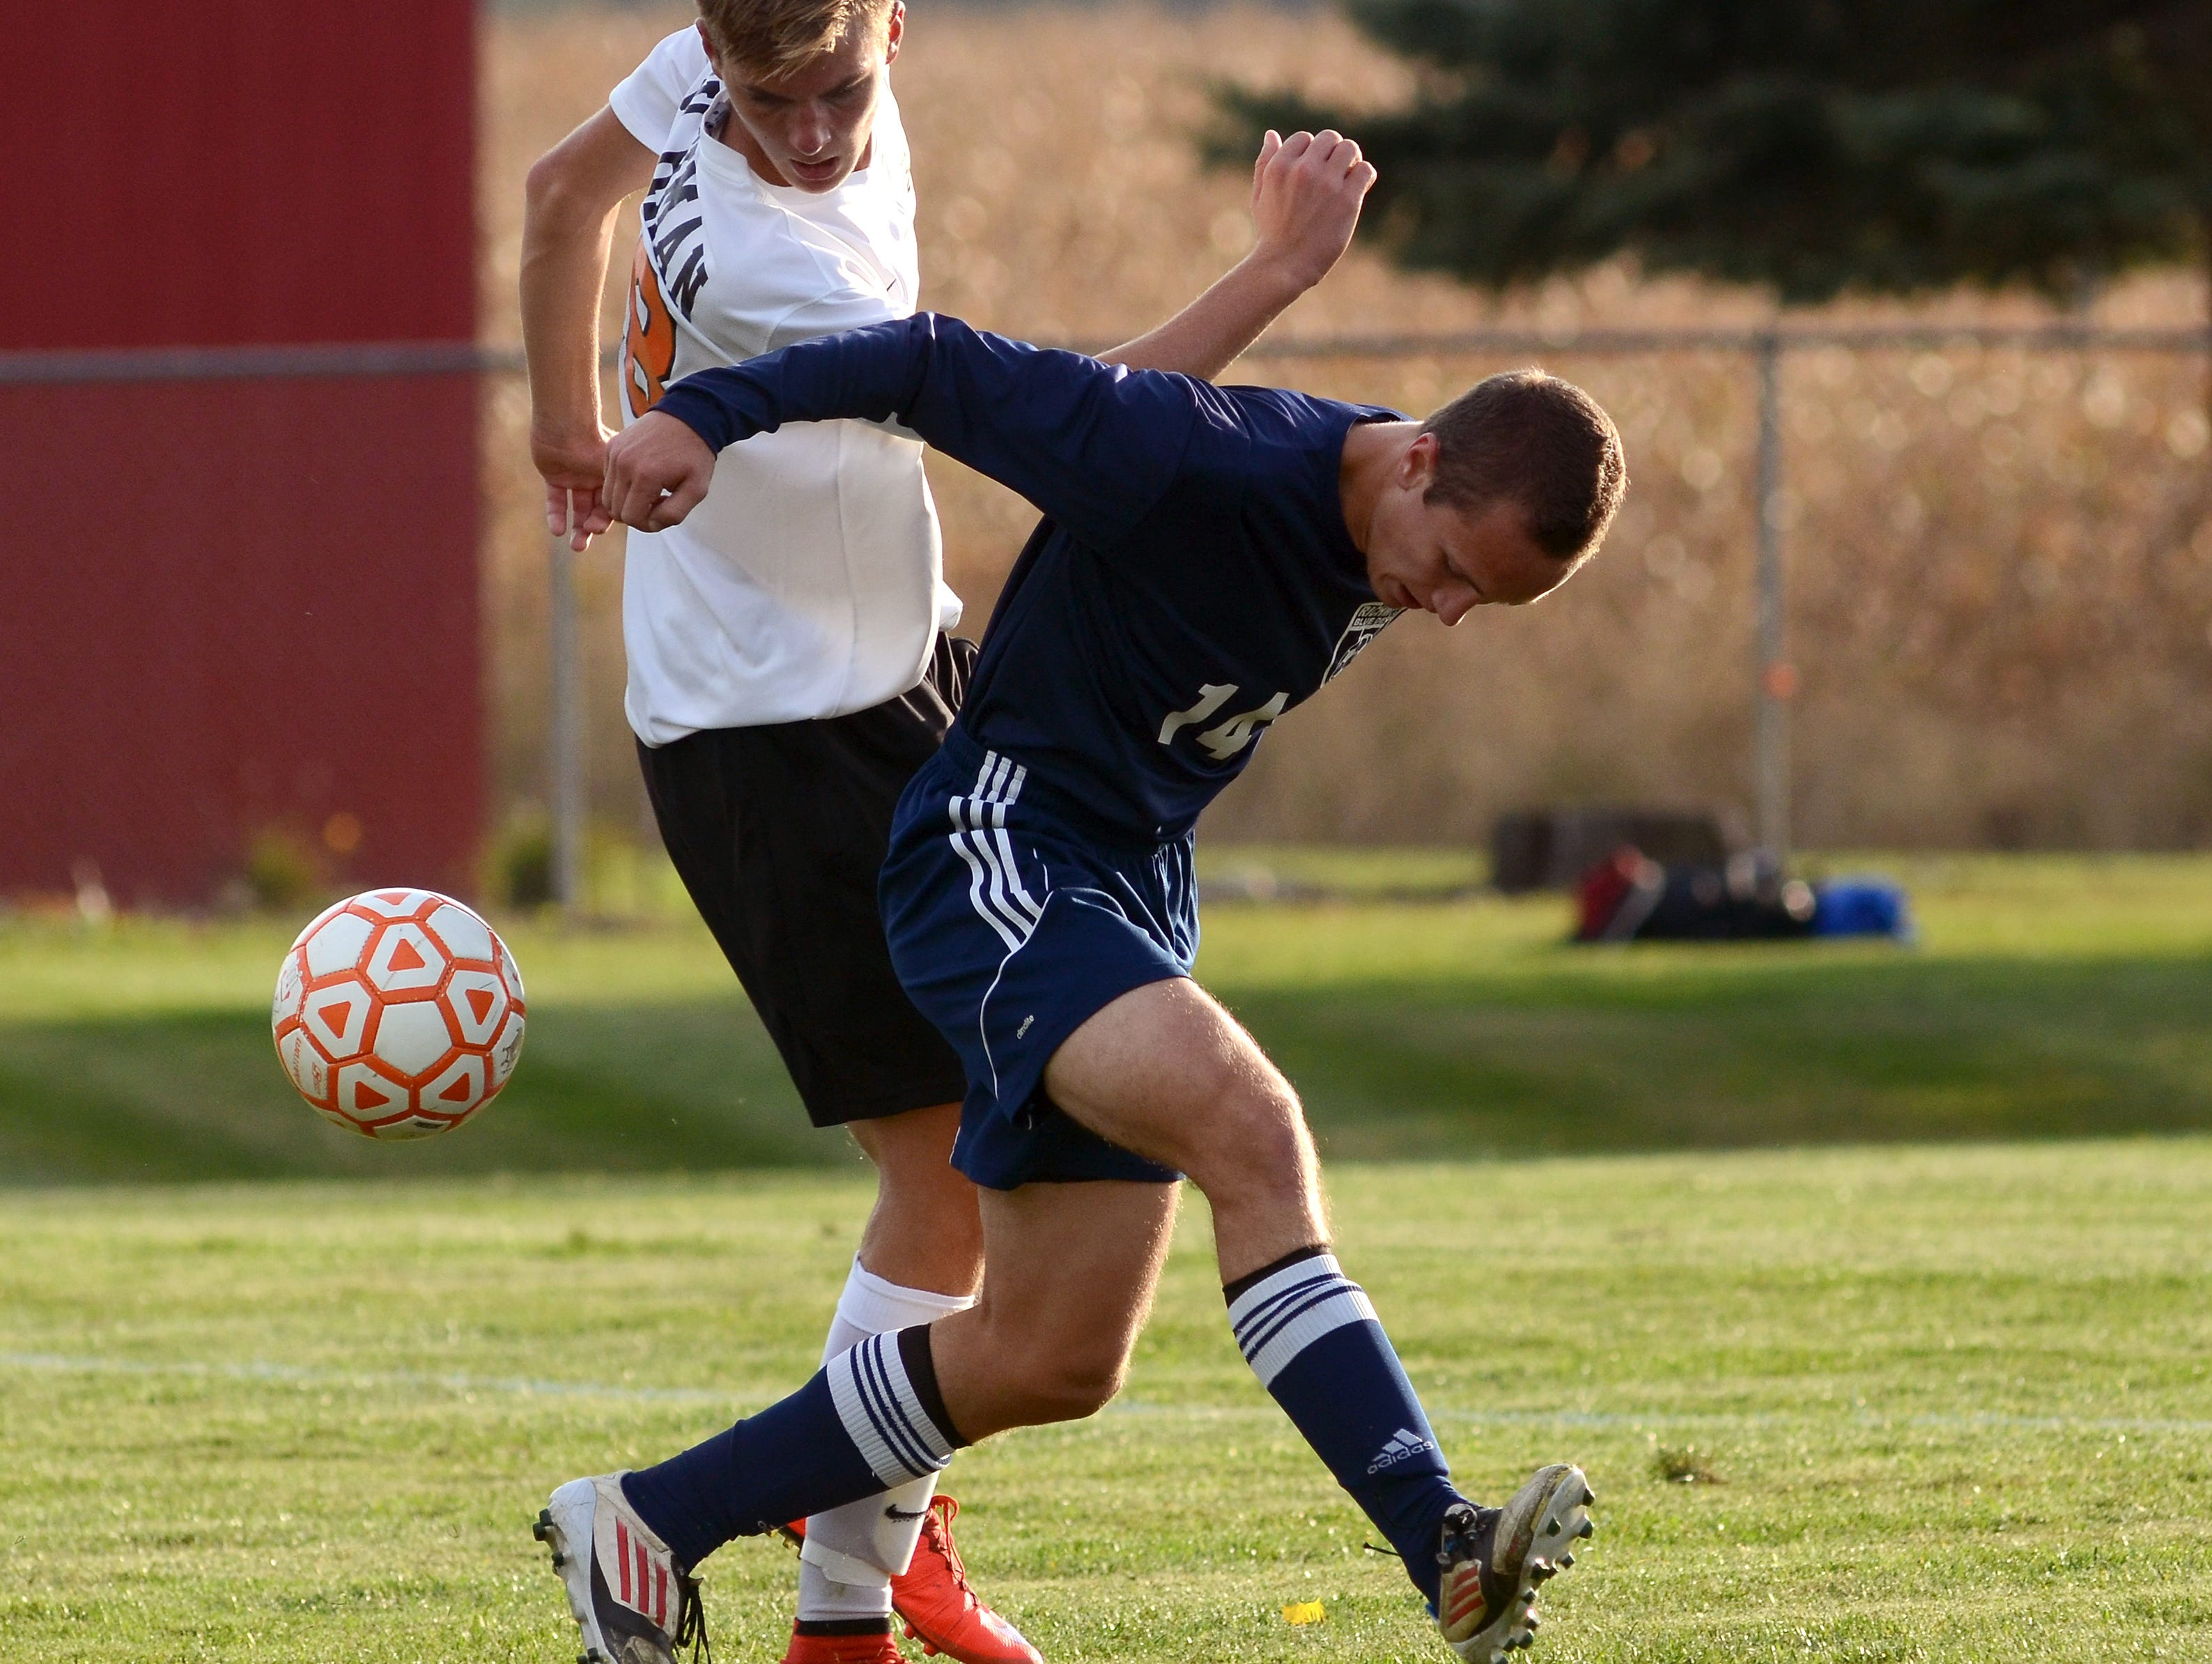 Blue Devils' Evan Quigley and Almont midfielder Zach Wichman both battle for the ball Monday, Oct. 12 during high school soccer action at Almont.